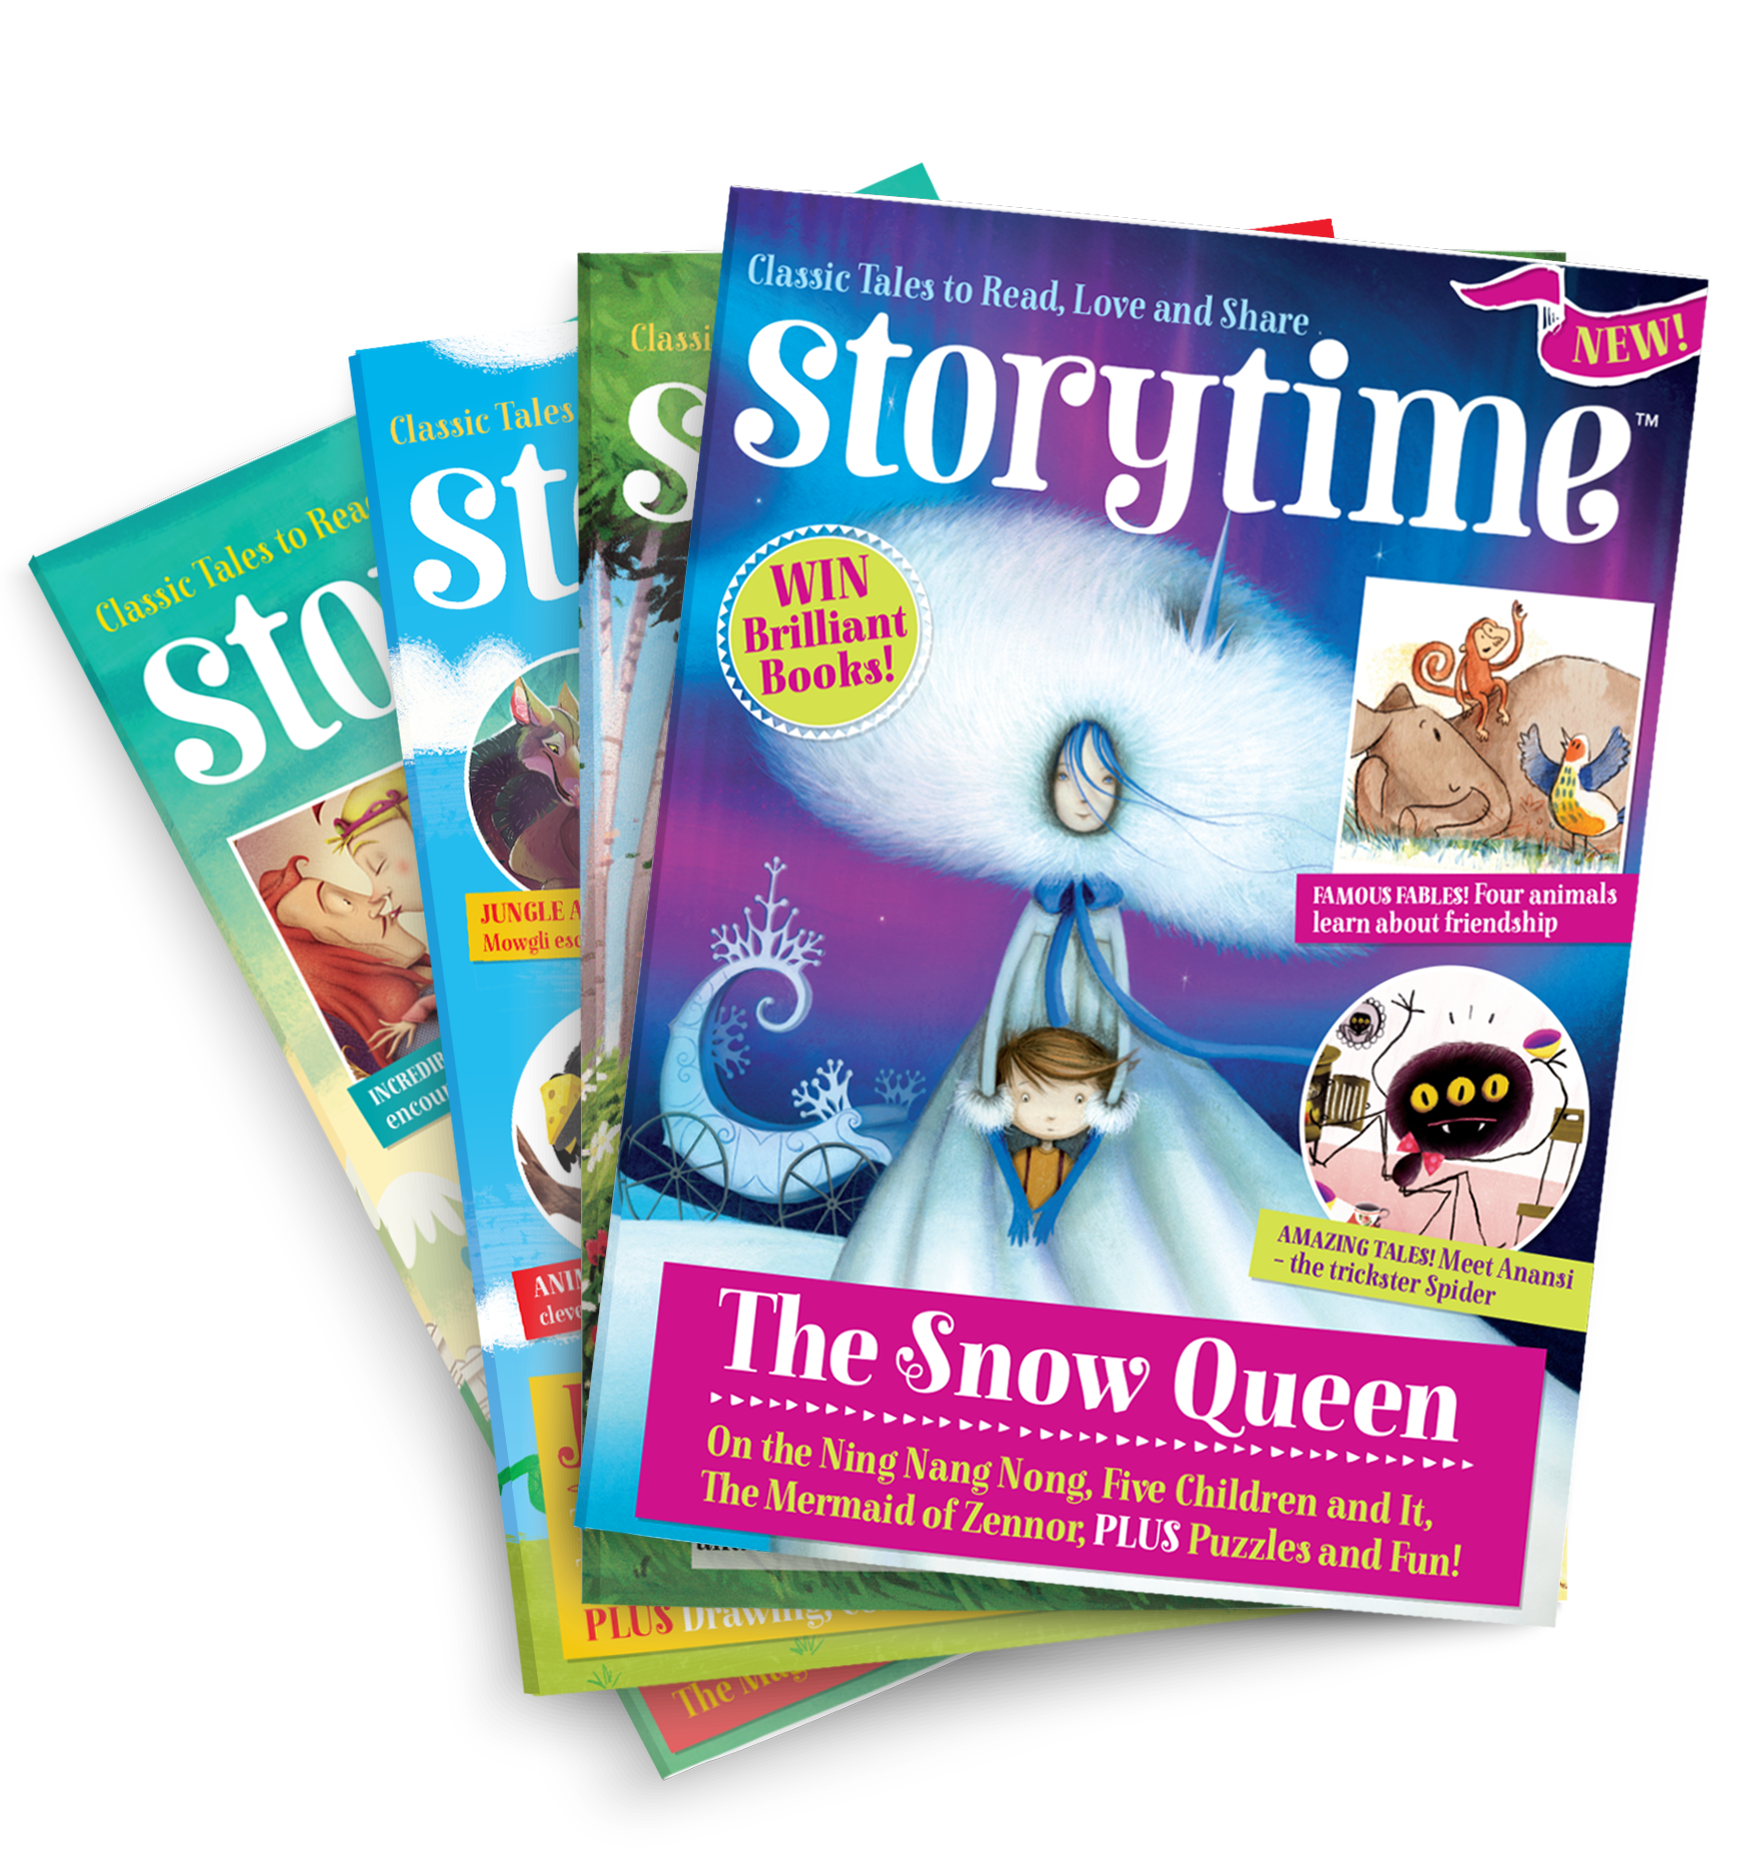 Storytime-kids-magazine-subscriptions.-Issue-stack-with-Snow-Queen-www.storytimemagazine.com/subscribe